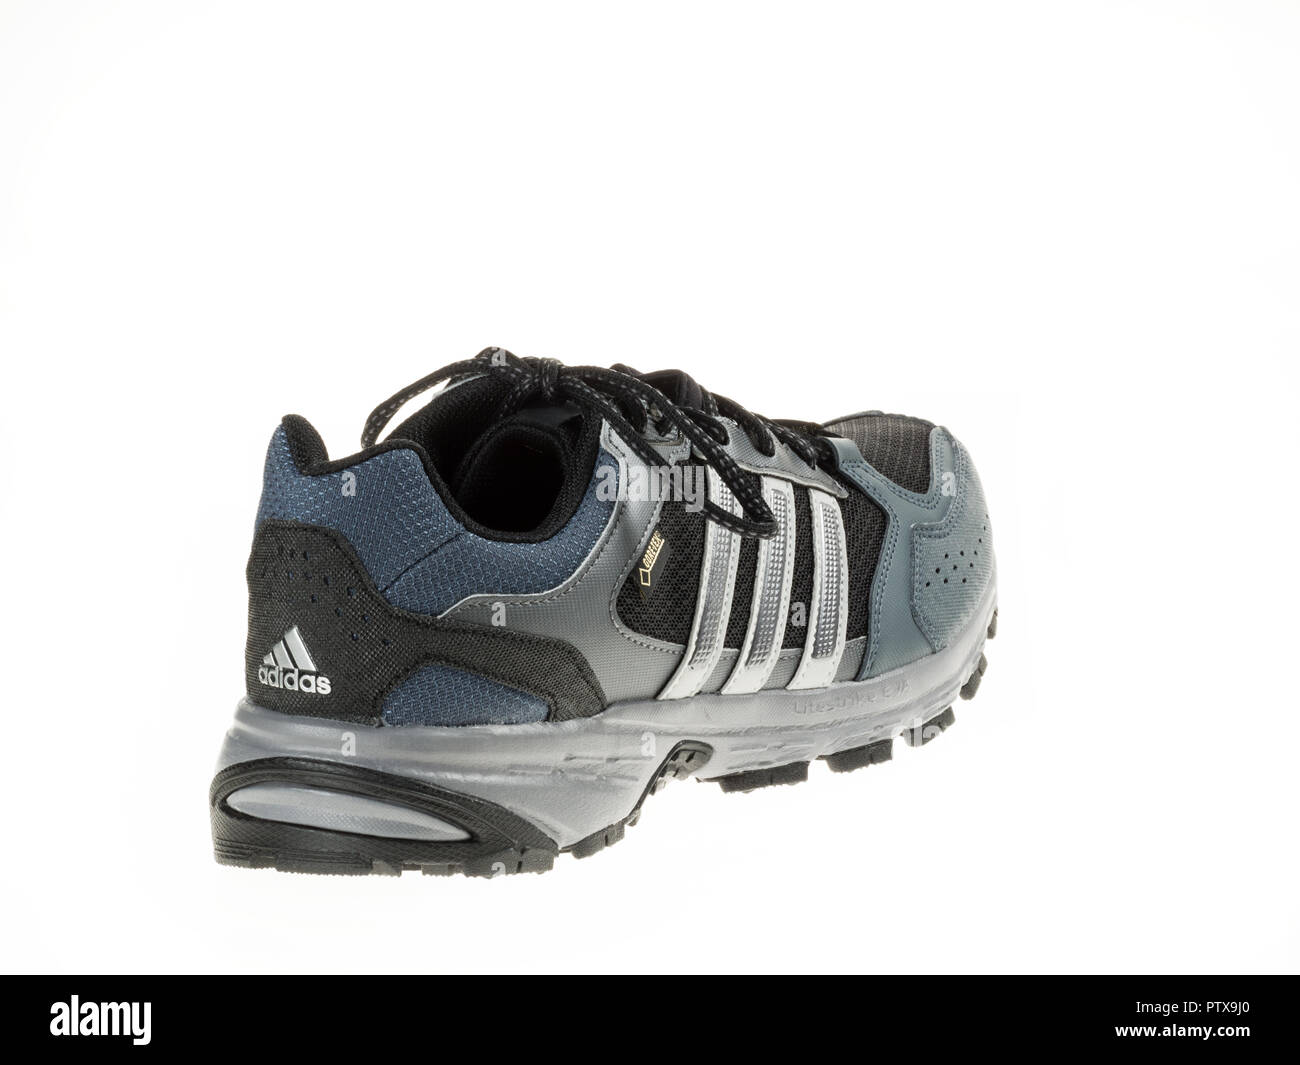 Istanbul, Turkey - January 29, 2014: New Adidas outdoor running shoes Taken at studio and isolated on white. Stock Photo